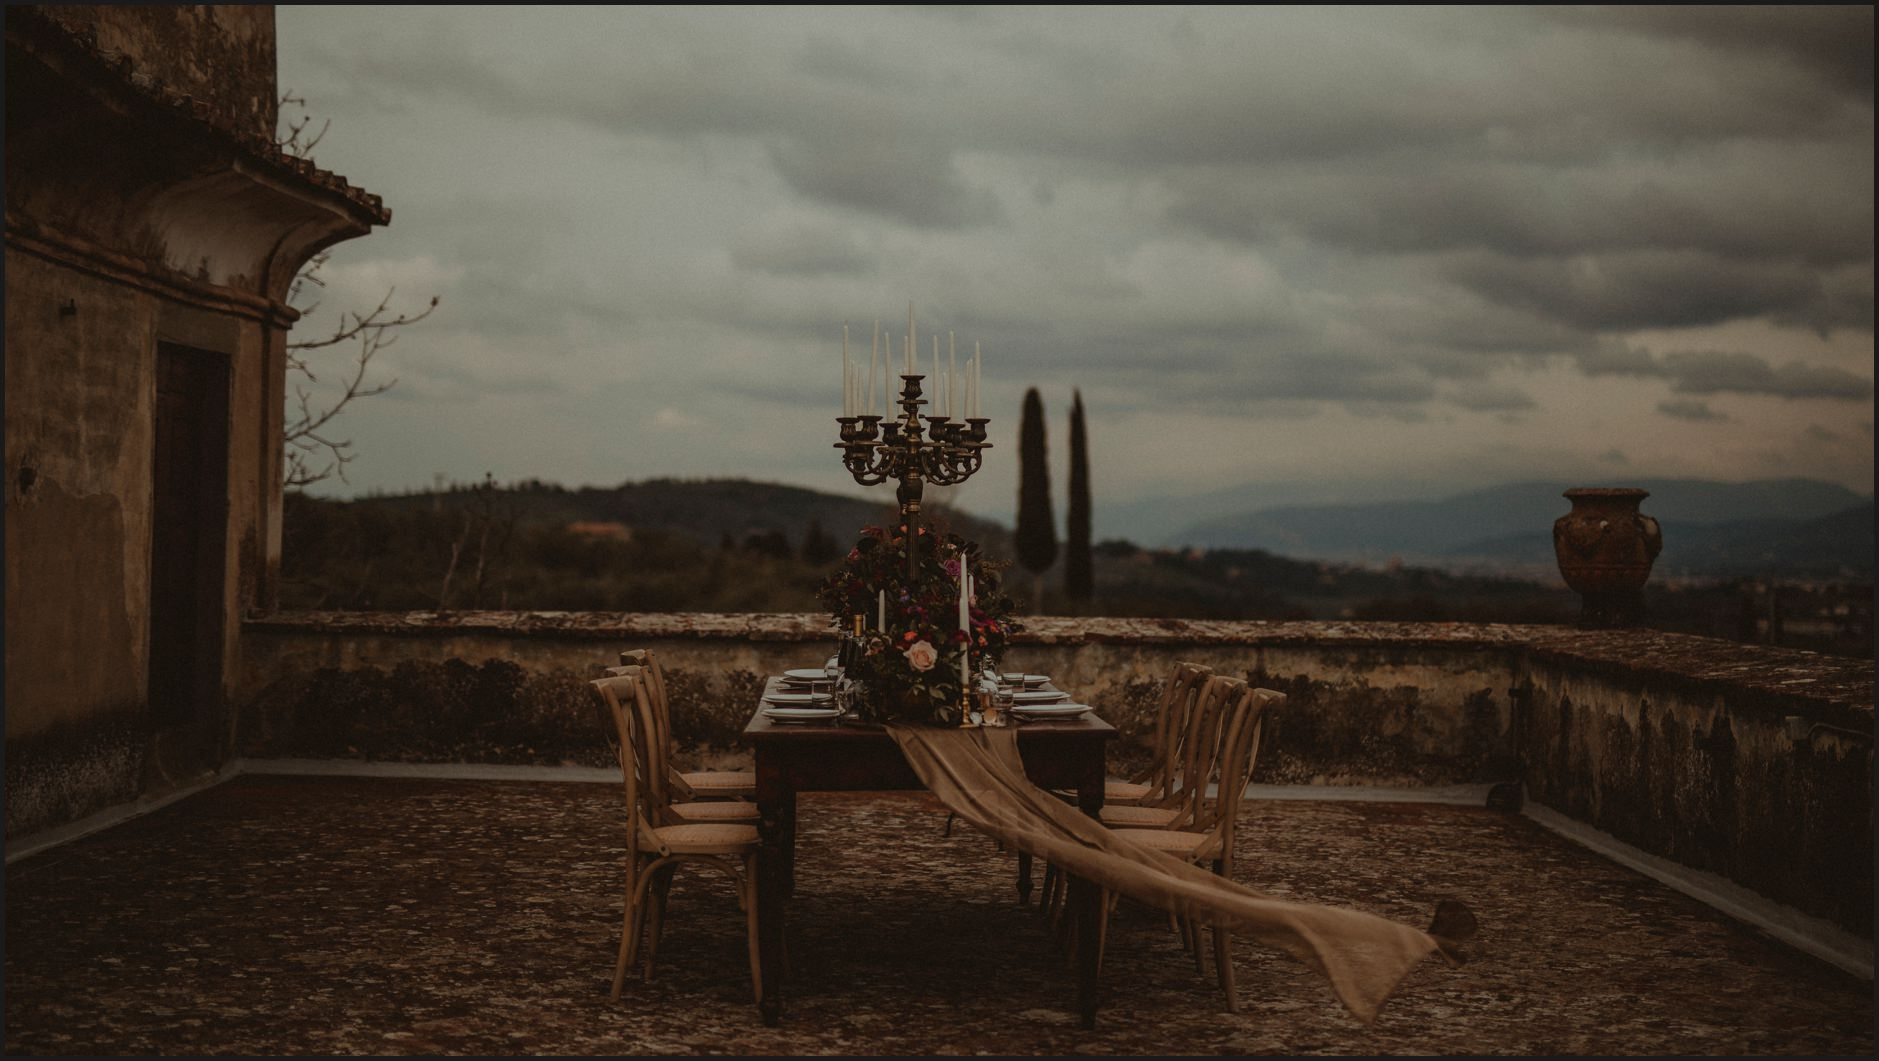 wedding, villa medicea di lilliano, tuscany, table set, details, flowers, candles